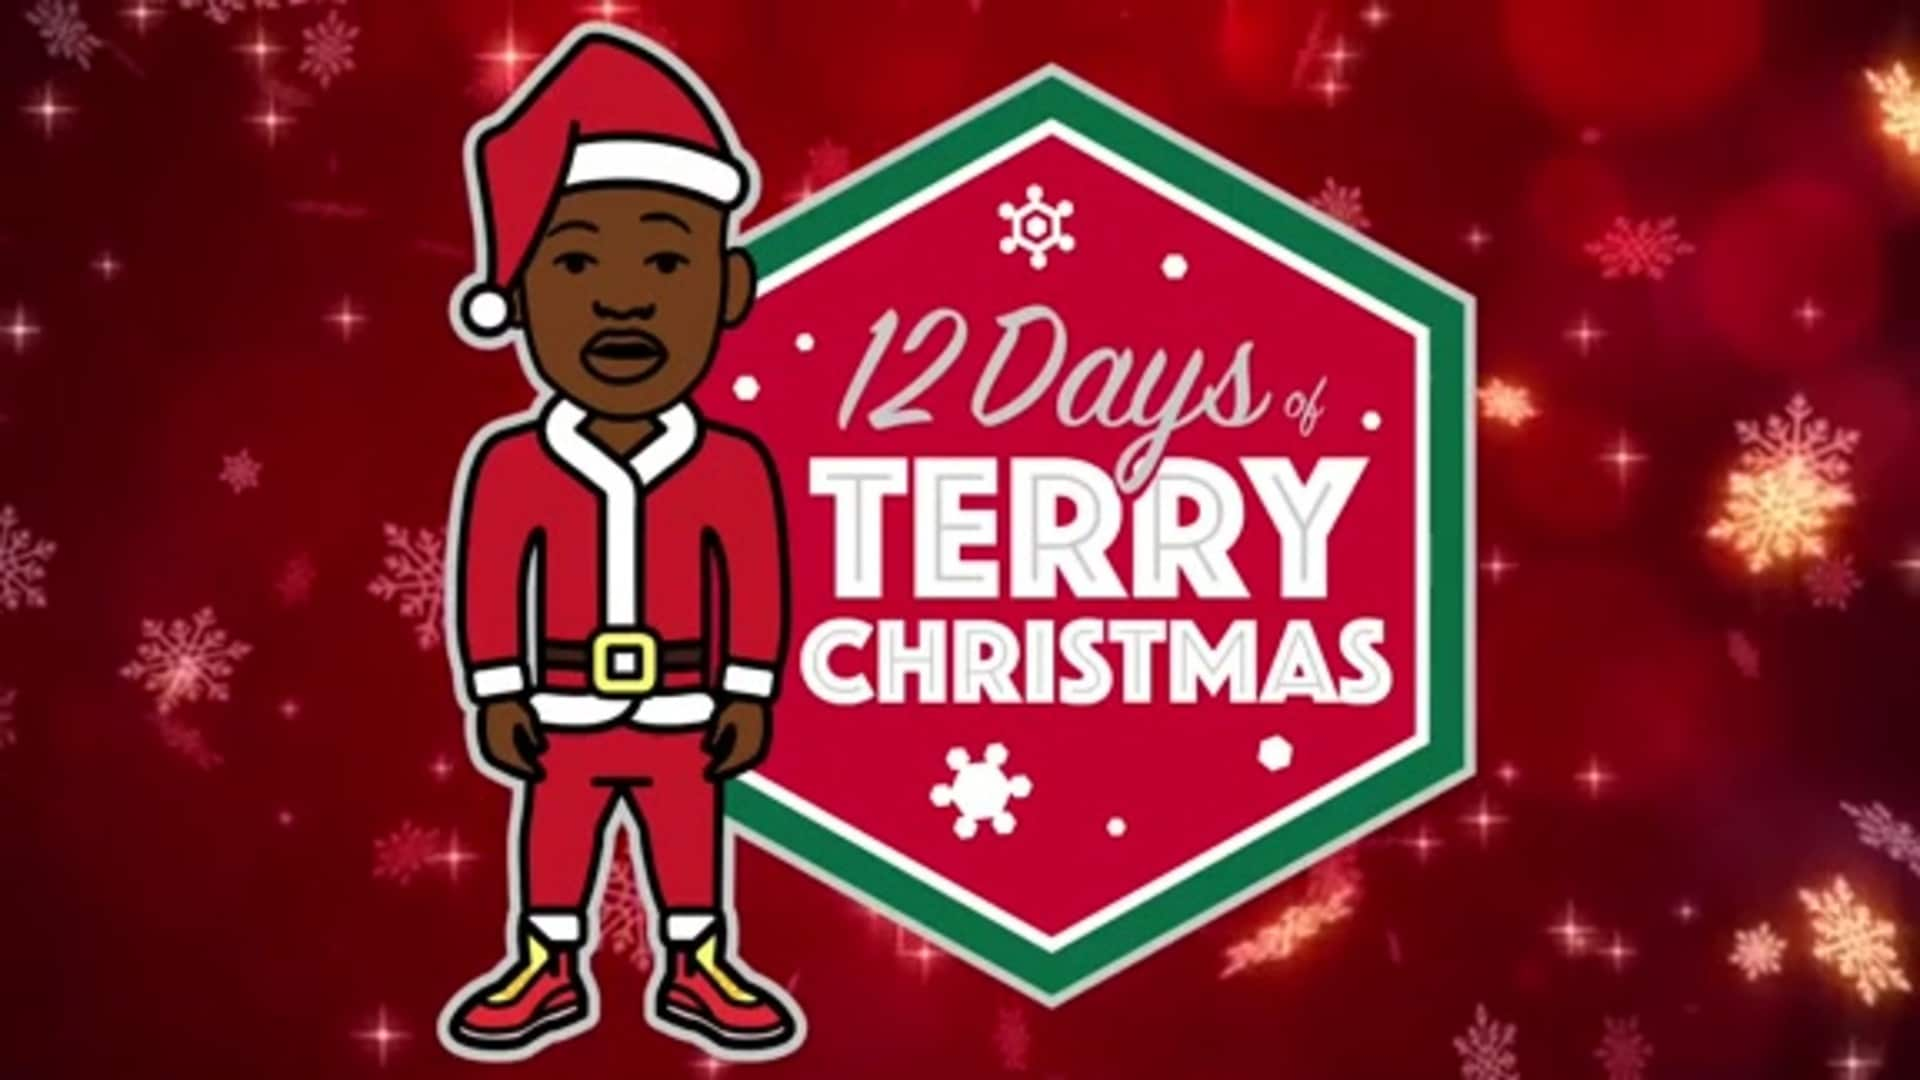 12 Days of Terry Christmas Recap - 12/21/19